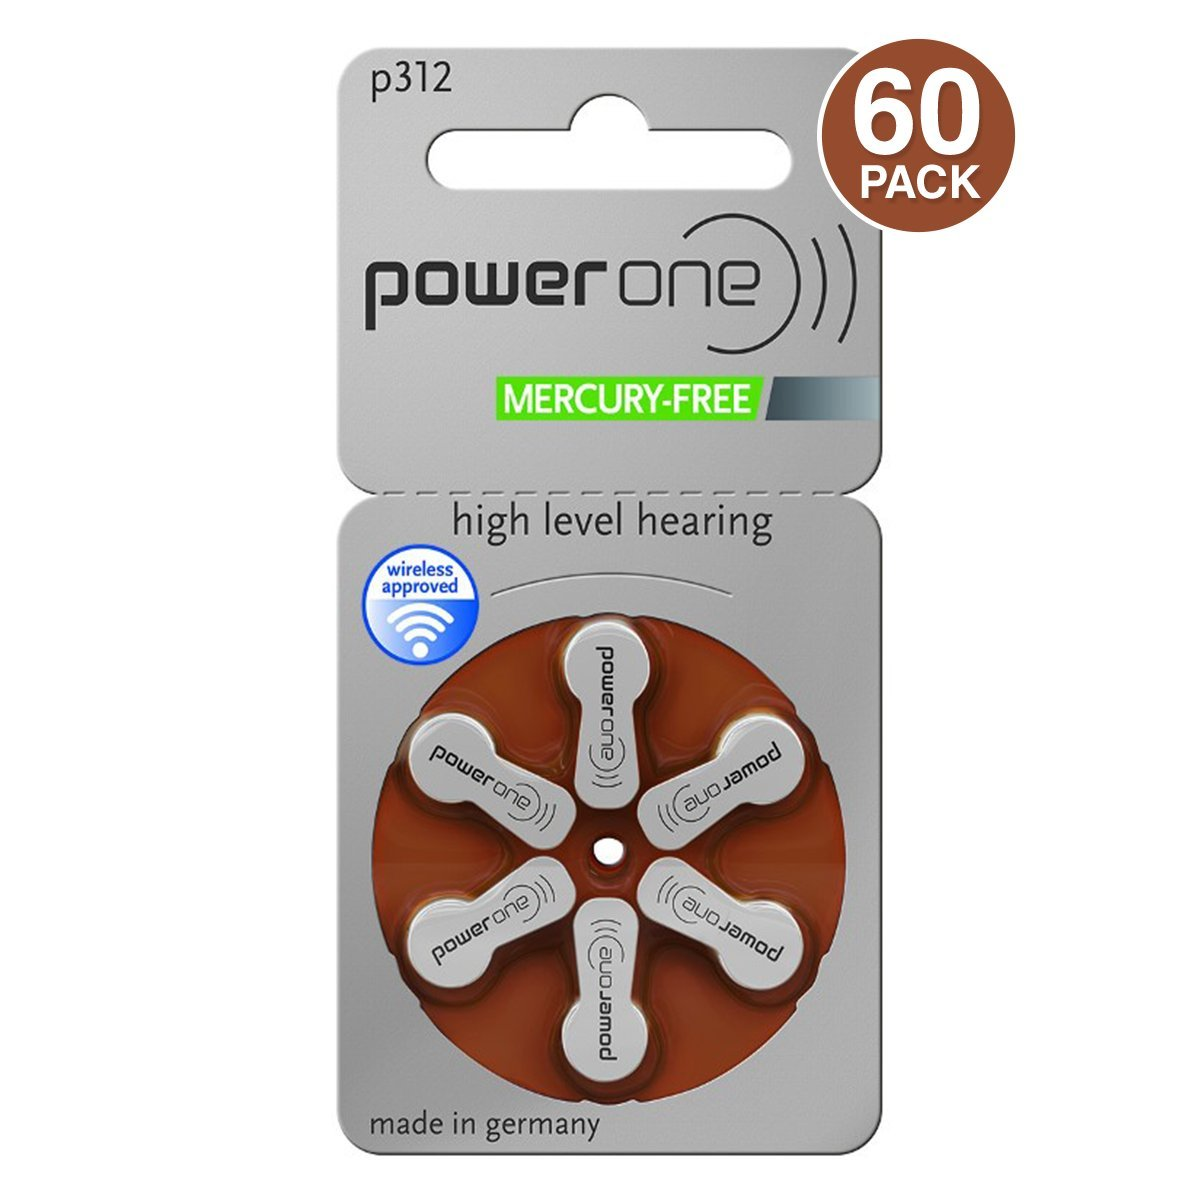 Power One p312 oJxOAM Hearing Aid Battery, 60 Count (4 Units) by PowerOne